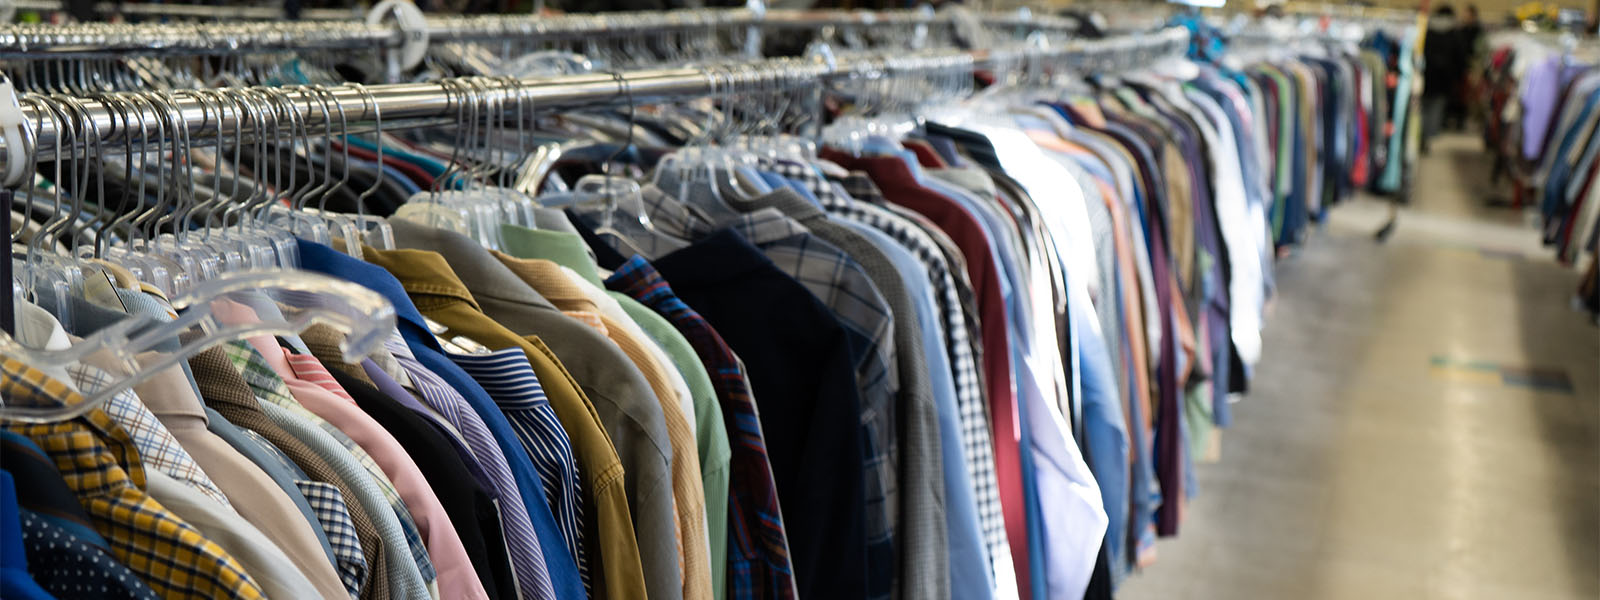 The Neighborhoods With the Best Thrift Stores in Richmond, Virginia